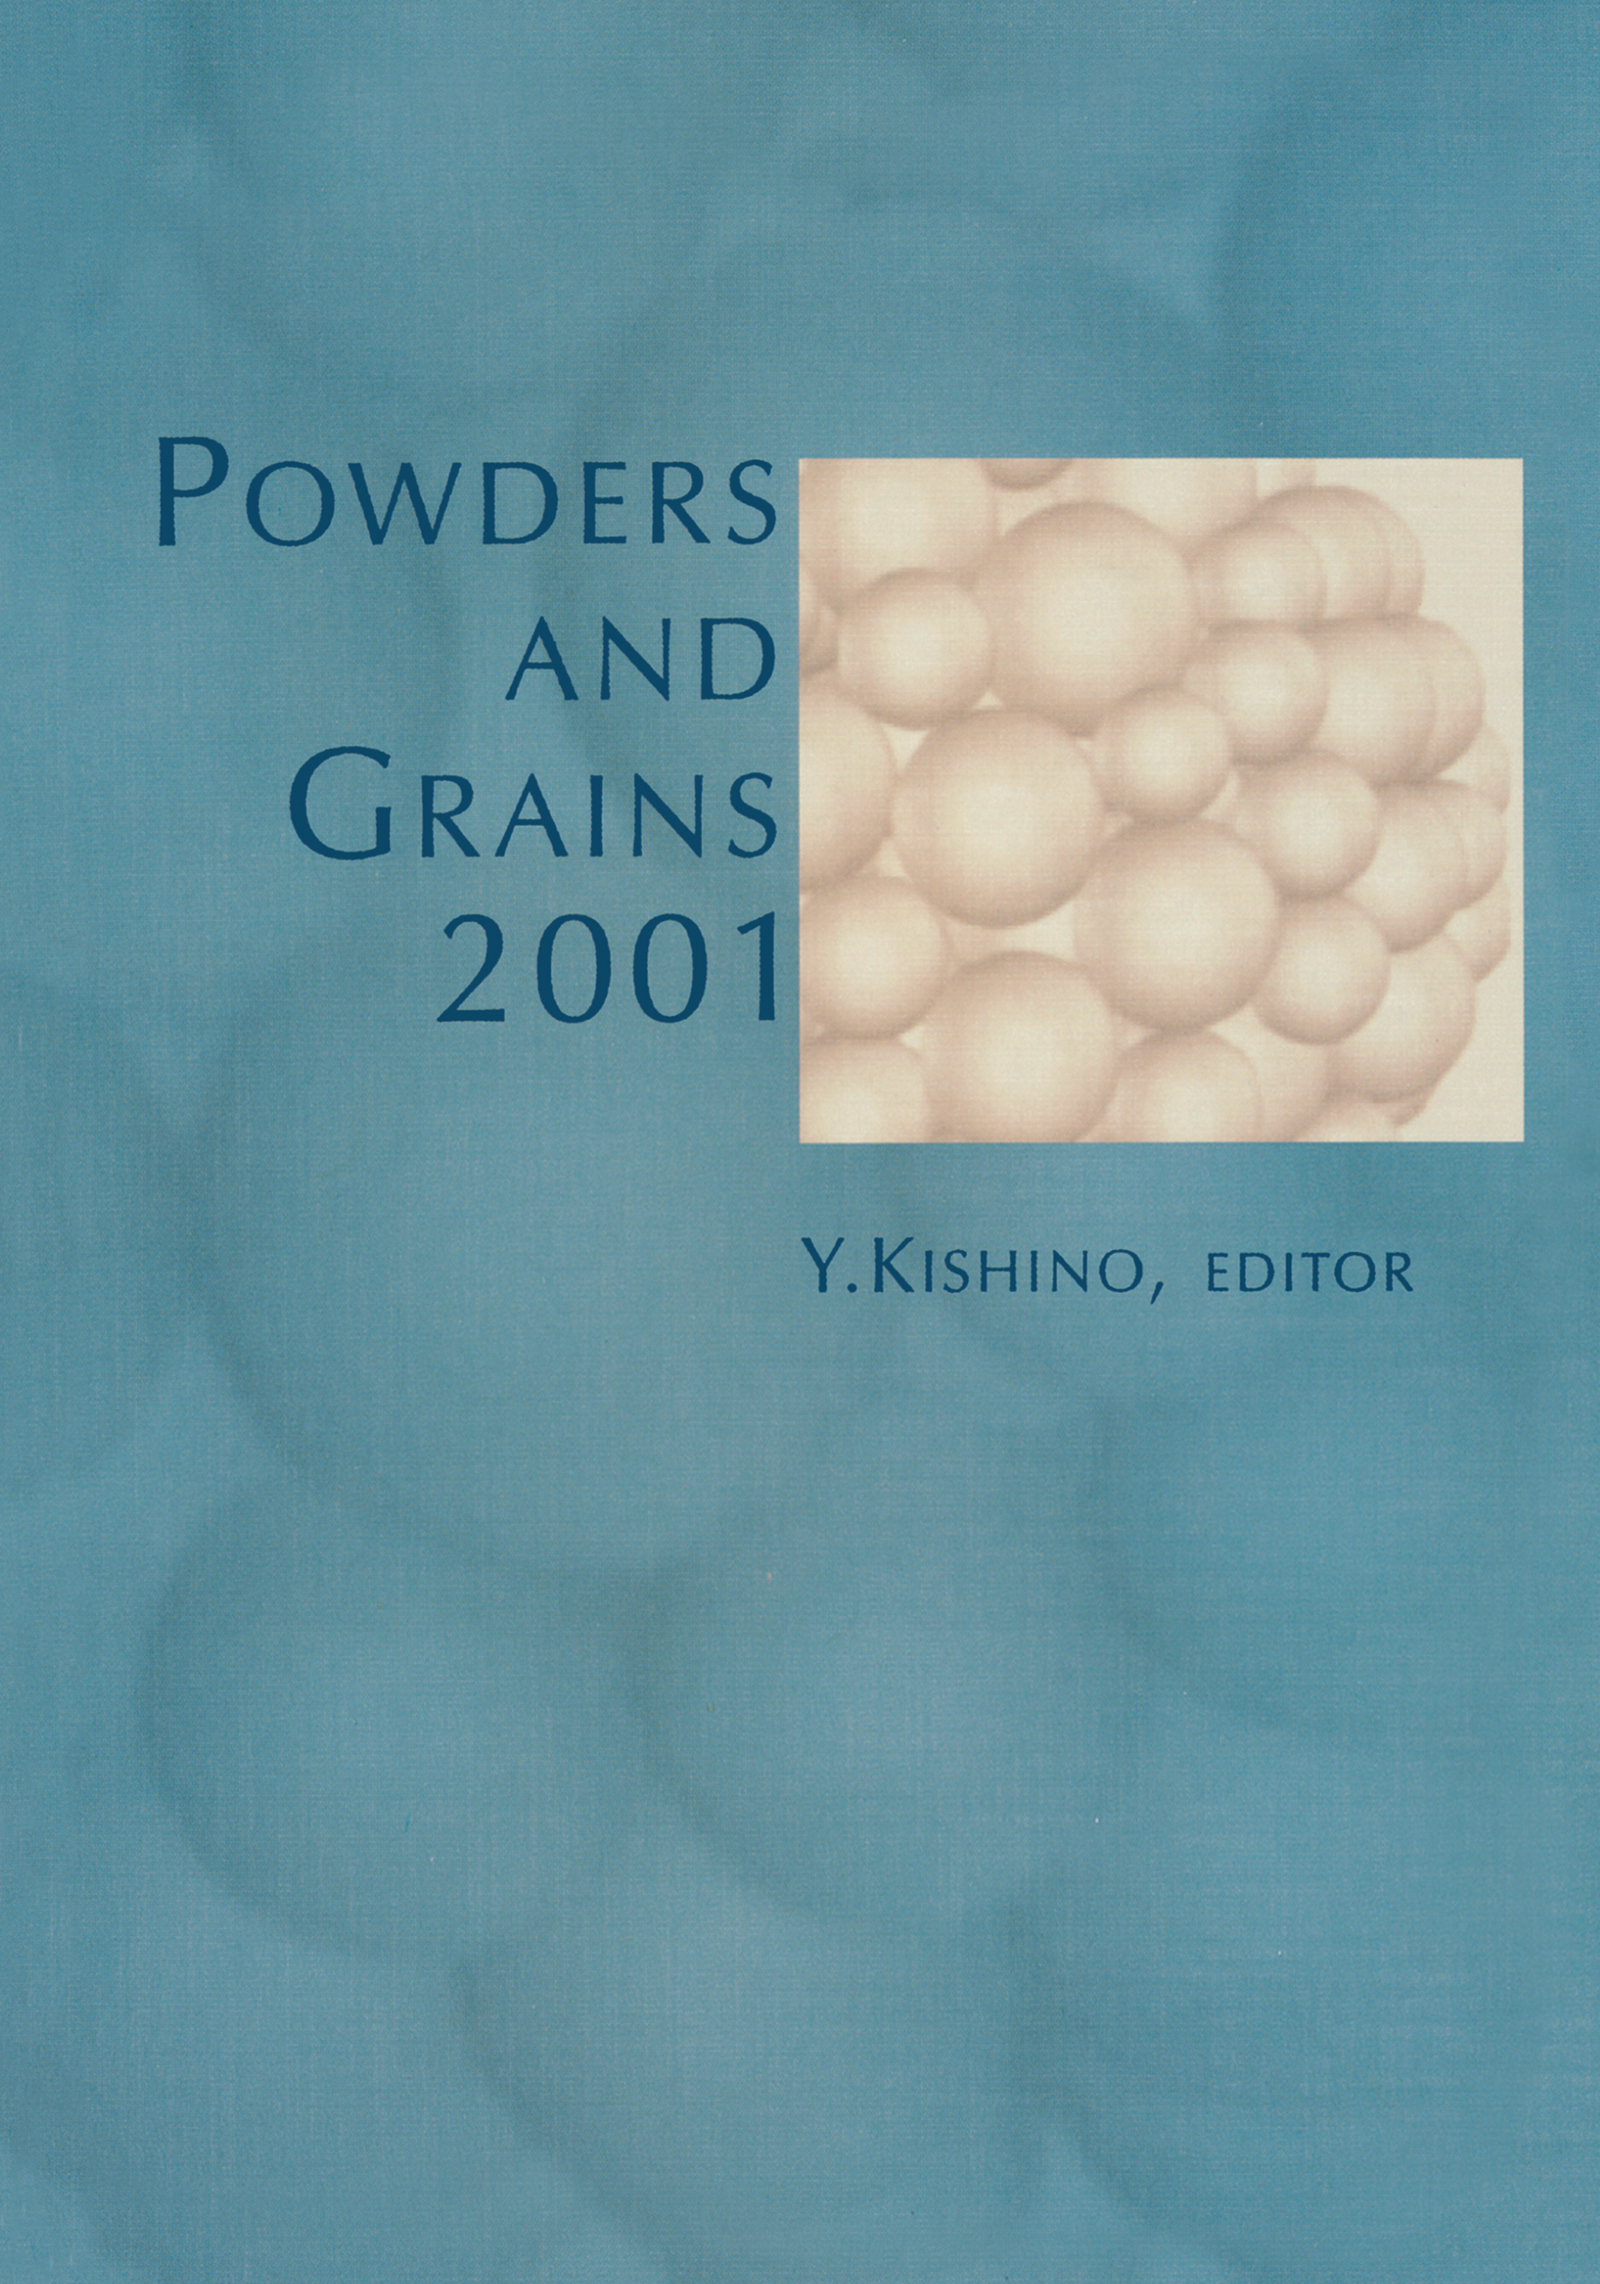 Powders and Grains 2001